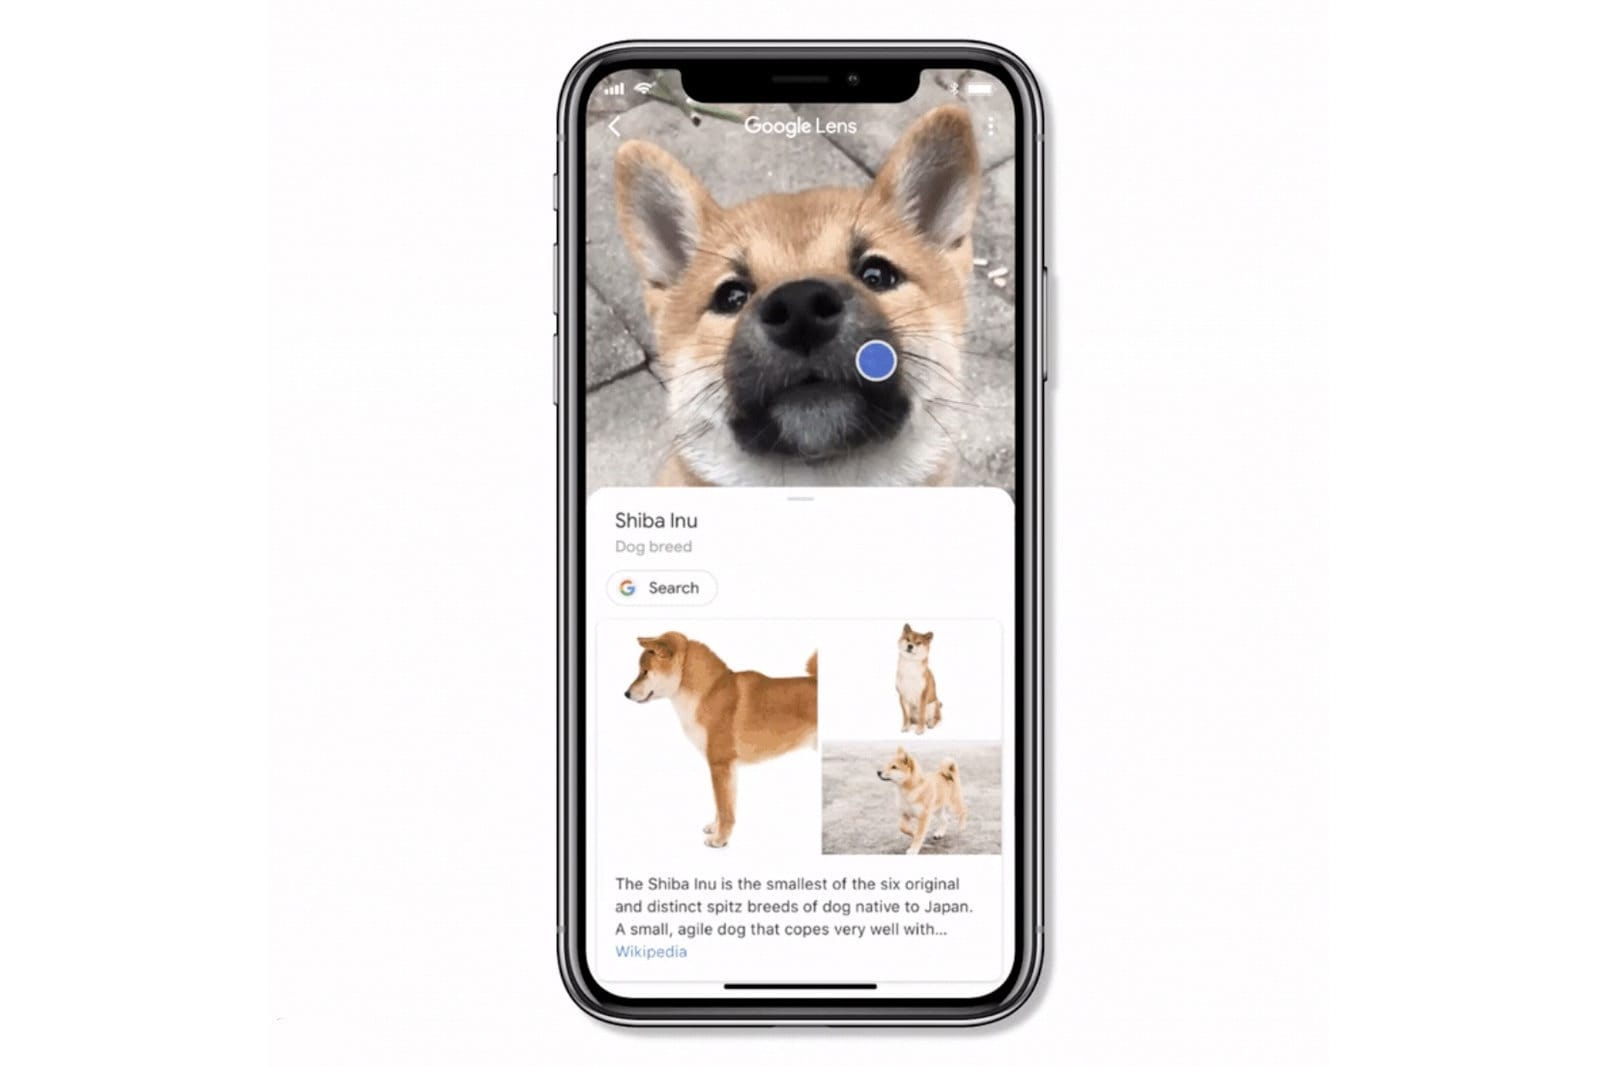 Google Lens for iOS